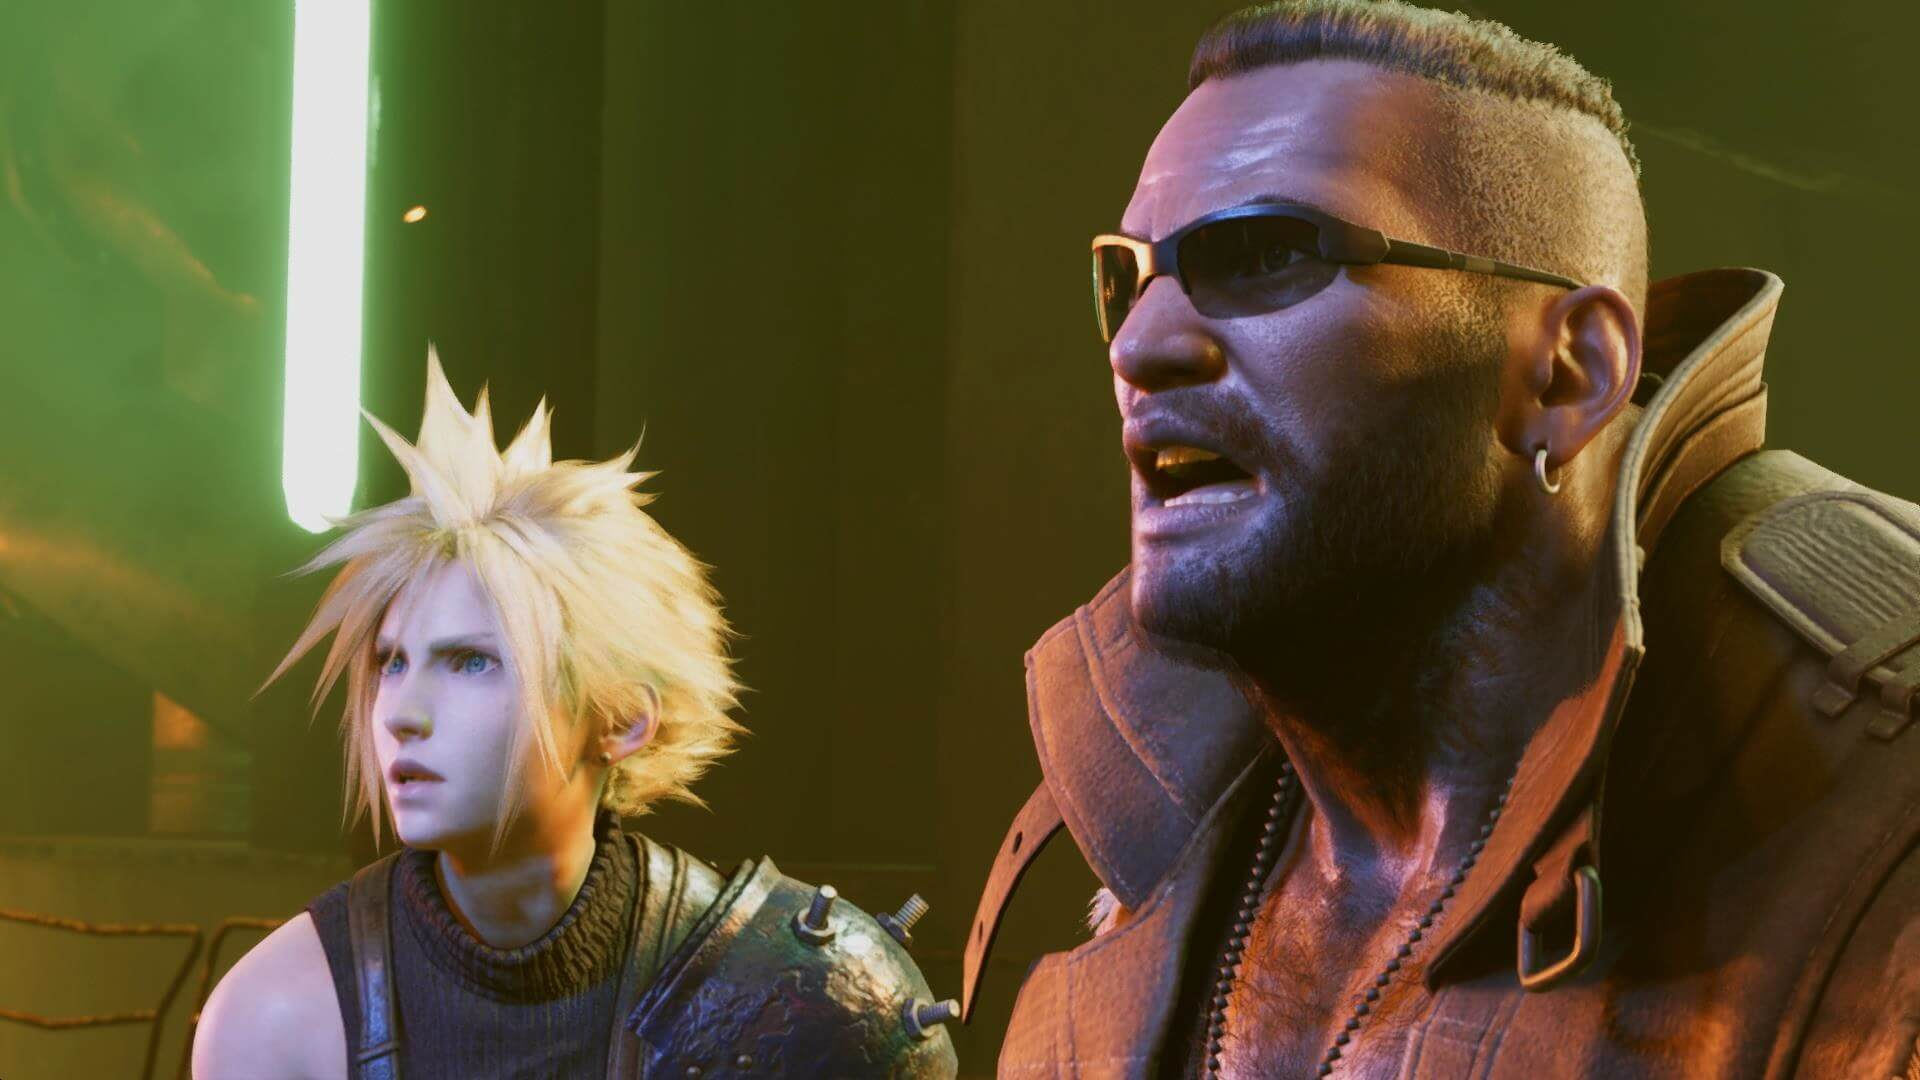 Square Enix released a demo for the first mission in Final Fantasy VII Remake